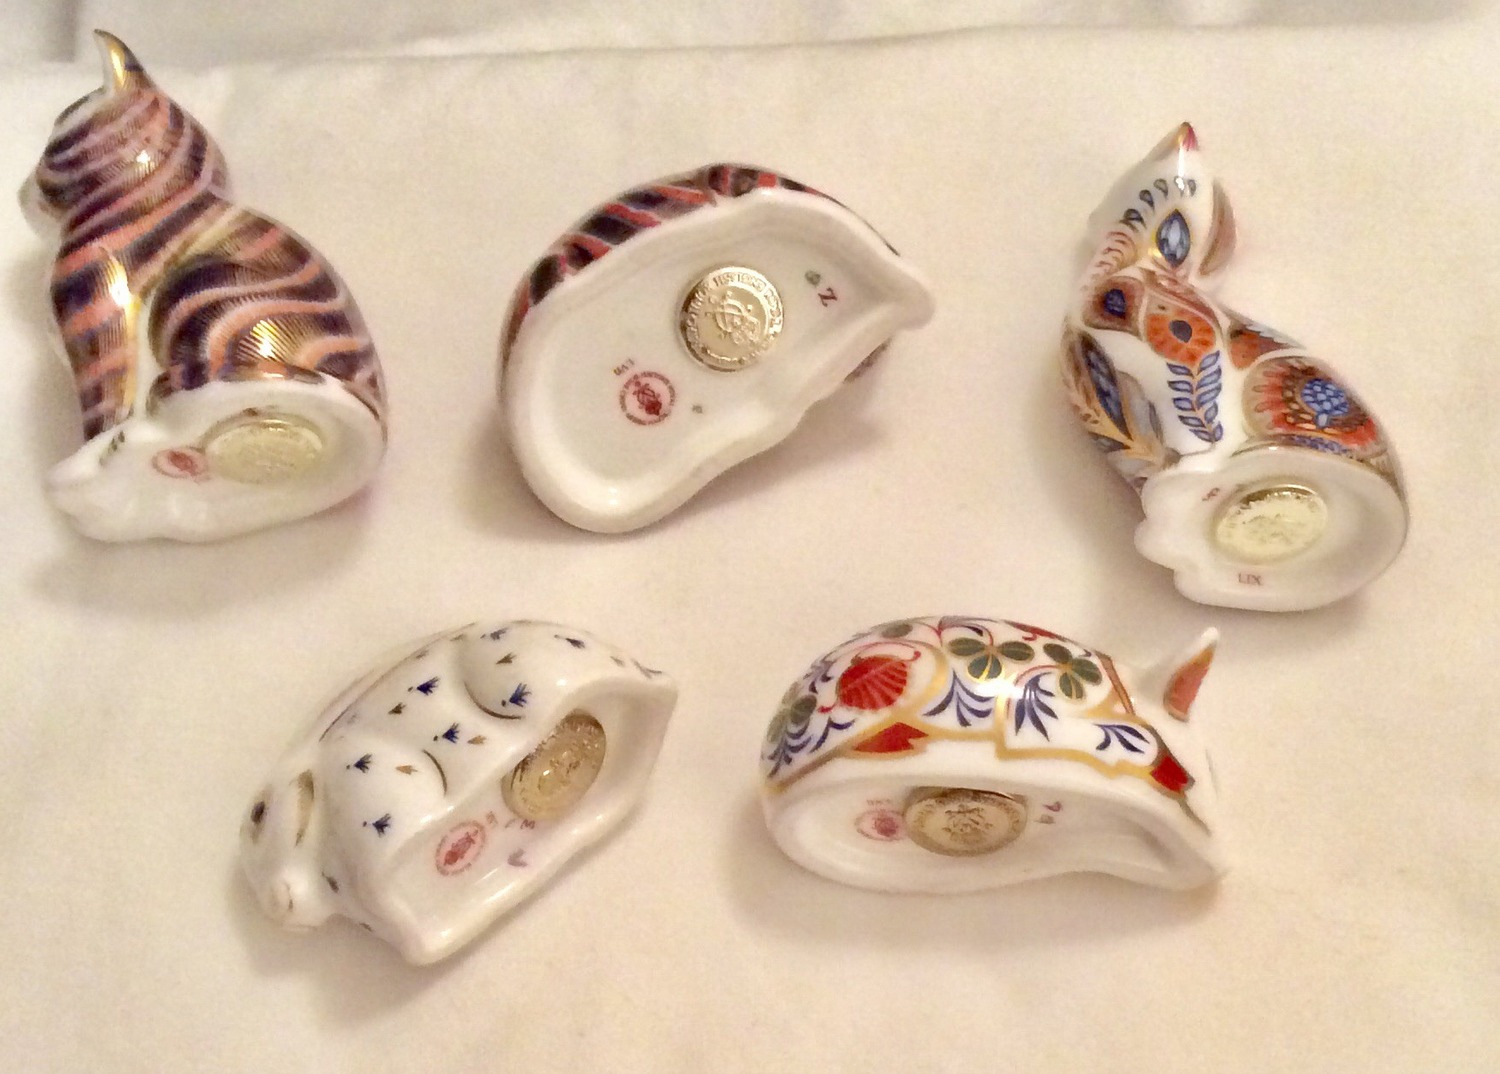 Lot 33 - 5 x ROYAL CROWN DERBY 1ST QUALITY GOLD STOPPER PAPERWEIGHTS NO DAMAGE VGC